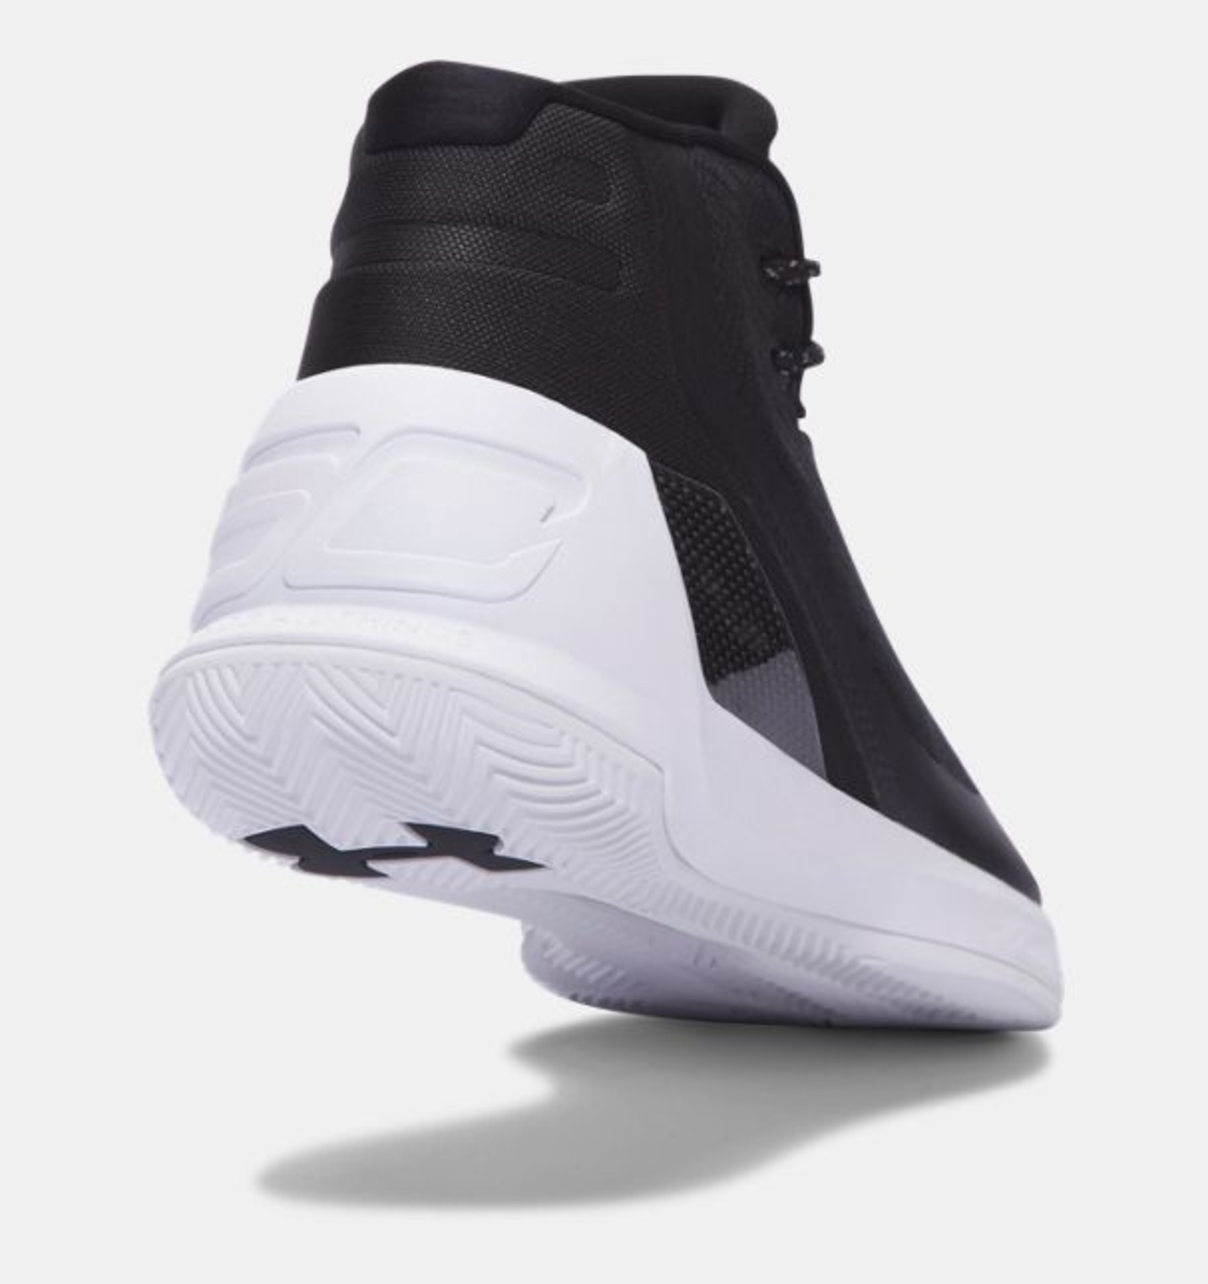 b1625053c251 under armour curry 3 black white 2 - WearTesters